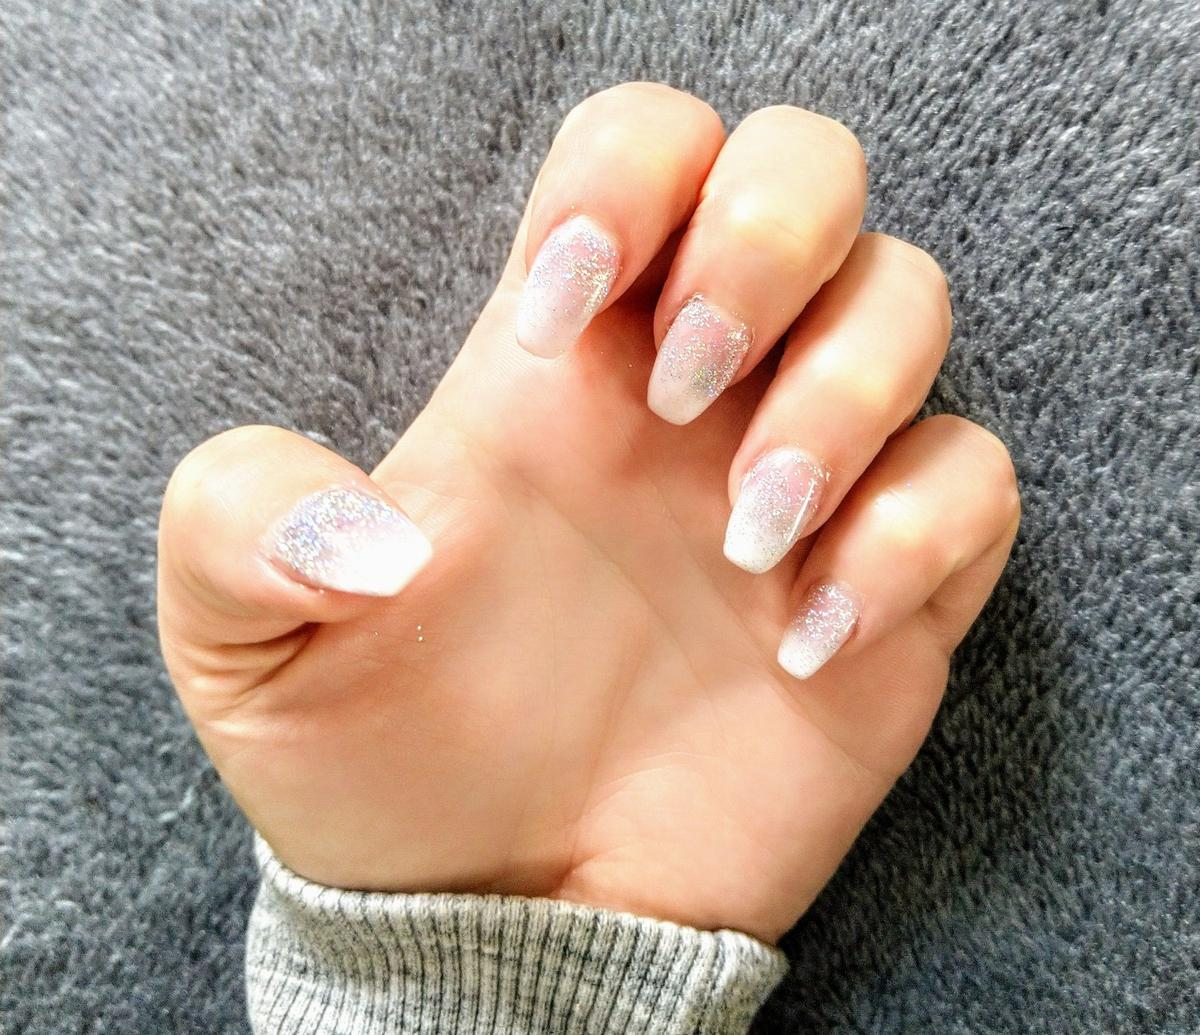 Mobile Qualified nail tech covering all BHAM***  Acrylic nails extension ,💅 /INFILLS Manicure🧘 Pedicure 🧘 Gel nails/toes polish💅 EXTENSION SOAK OFF  Working 7days per week 9am-6pm💃 Mobile 🚗 contact me *** WhatsApp *** Mobile 07922352584 *** Facebook  *** Email lilmaja2013@gmail.com  Any questions please ask